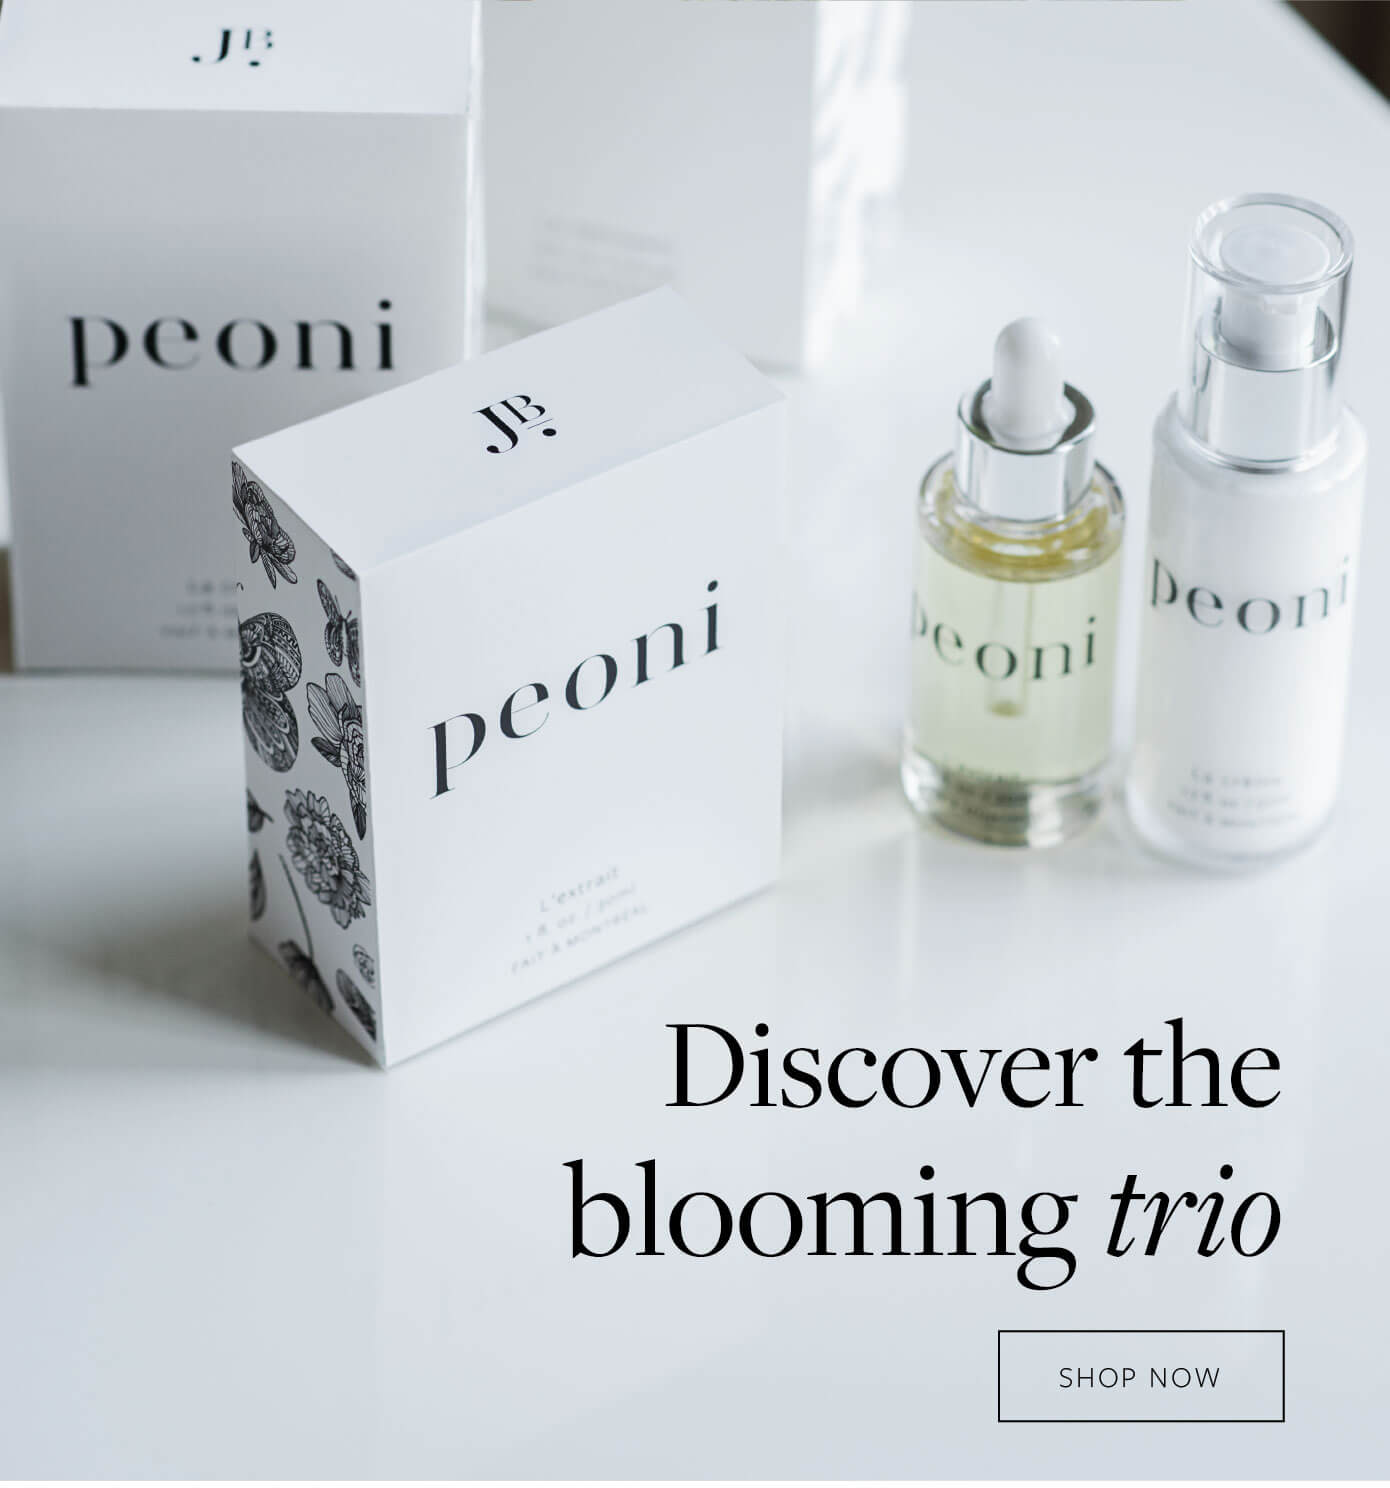 Discover the blooming trio